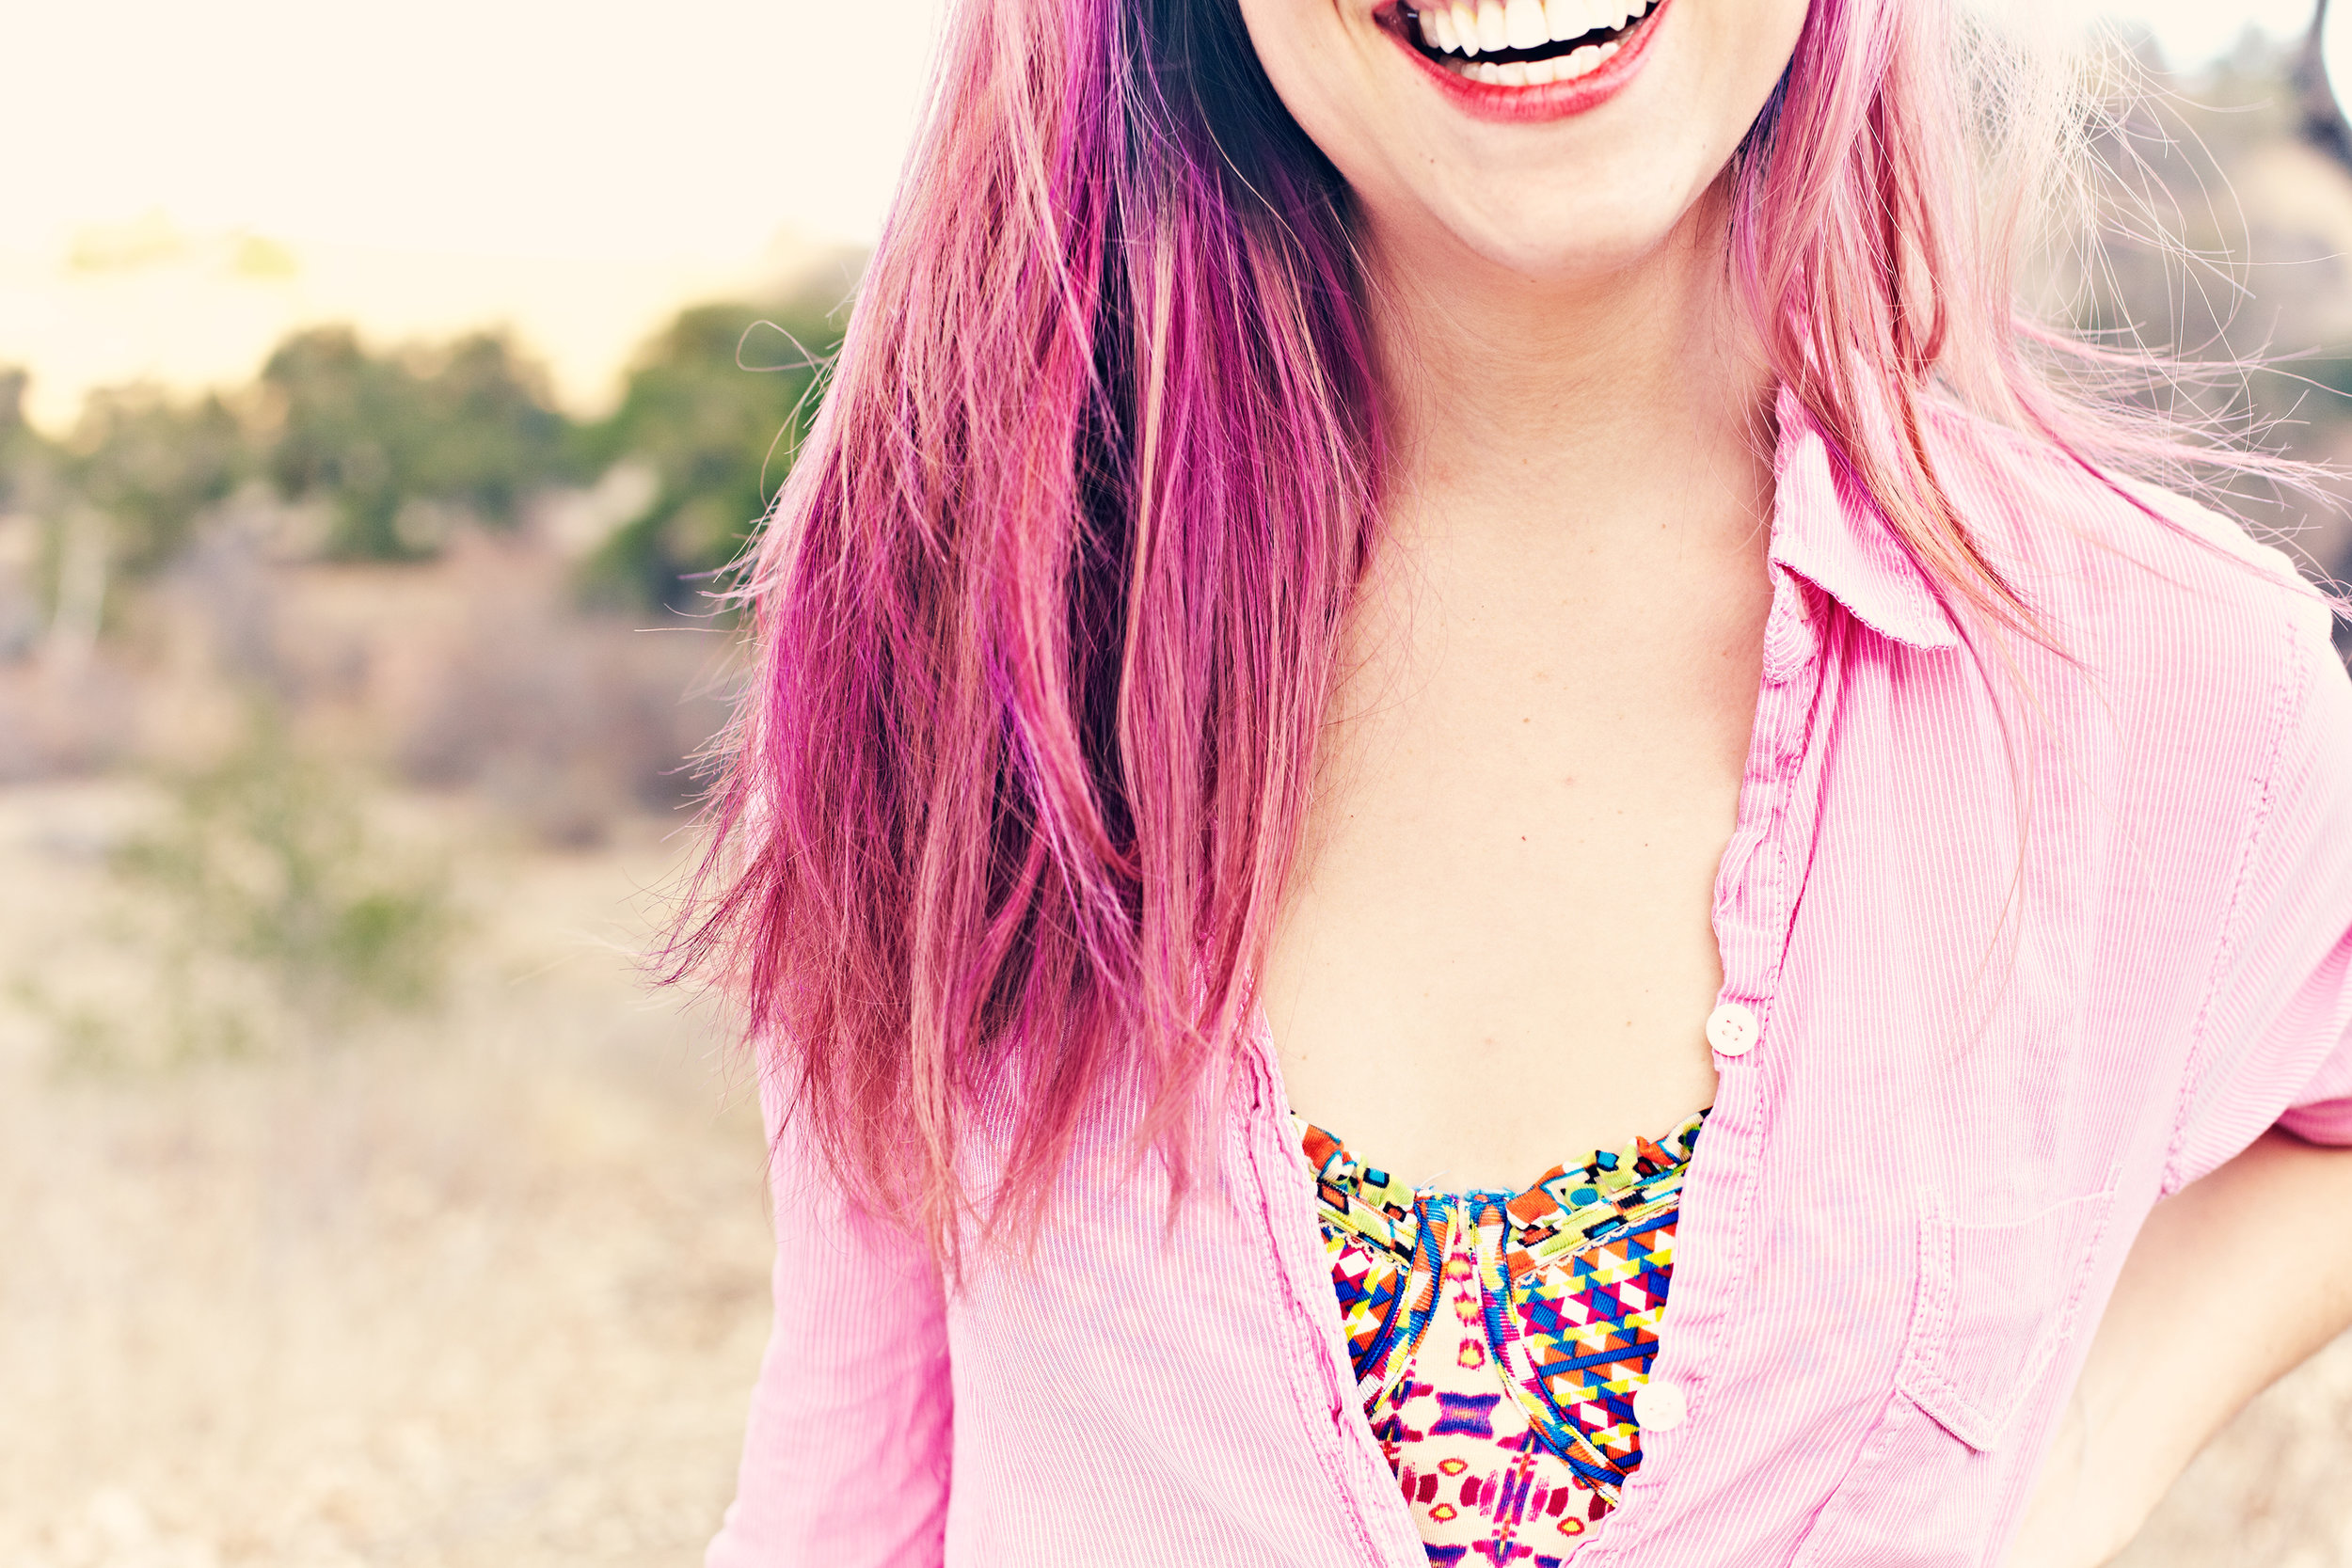 Pink haired young woman smiling on desert mountain scene